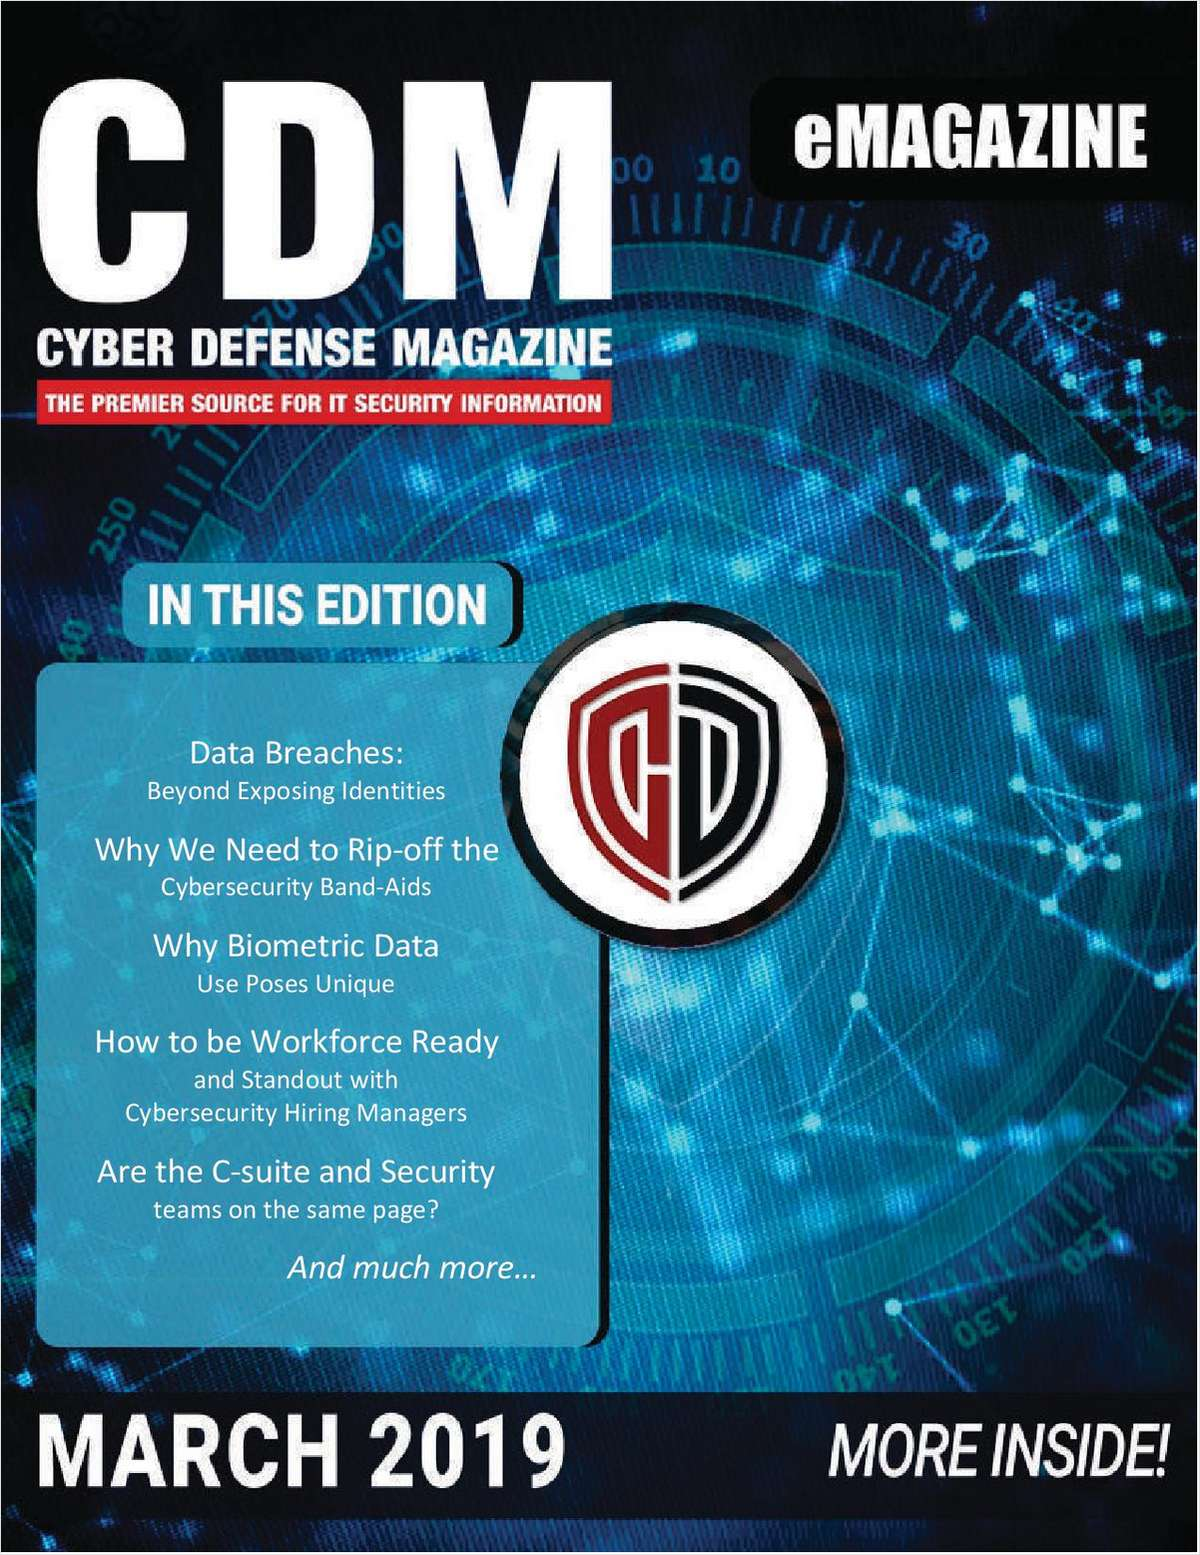 Cyber Defense eMagazine - Data Breaches Beyond Exposing Identities - March 2019 Edition